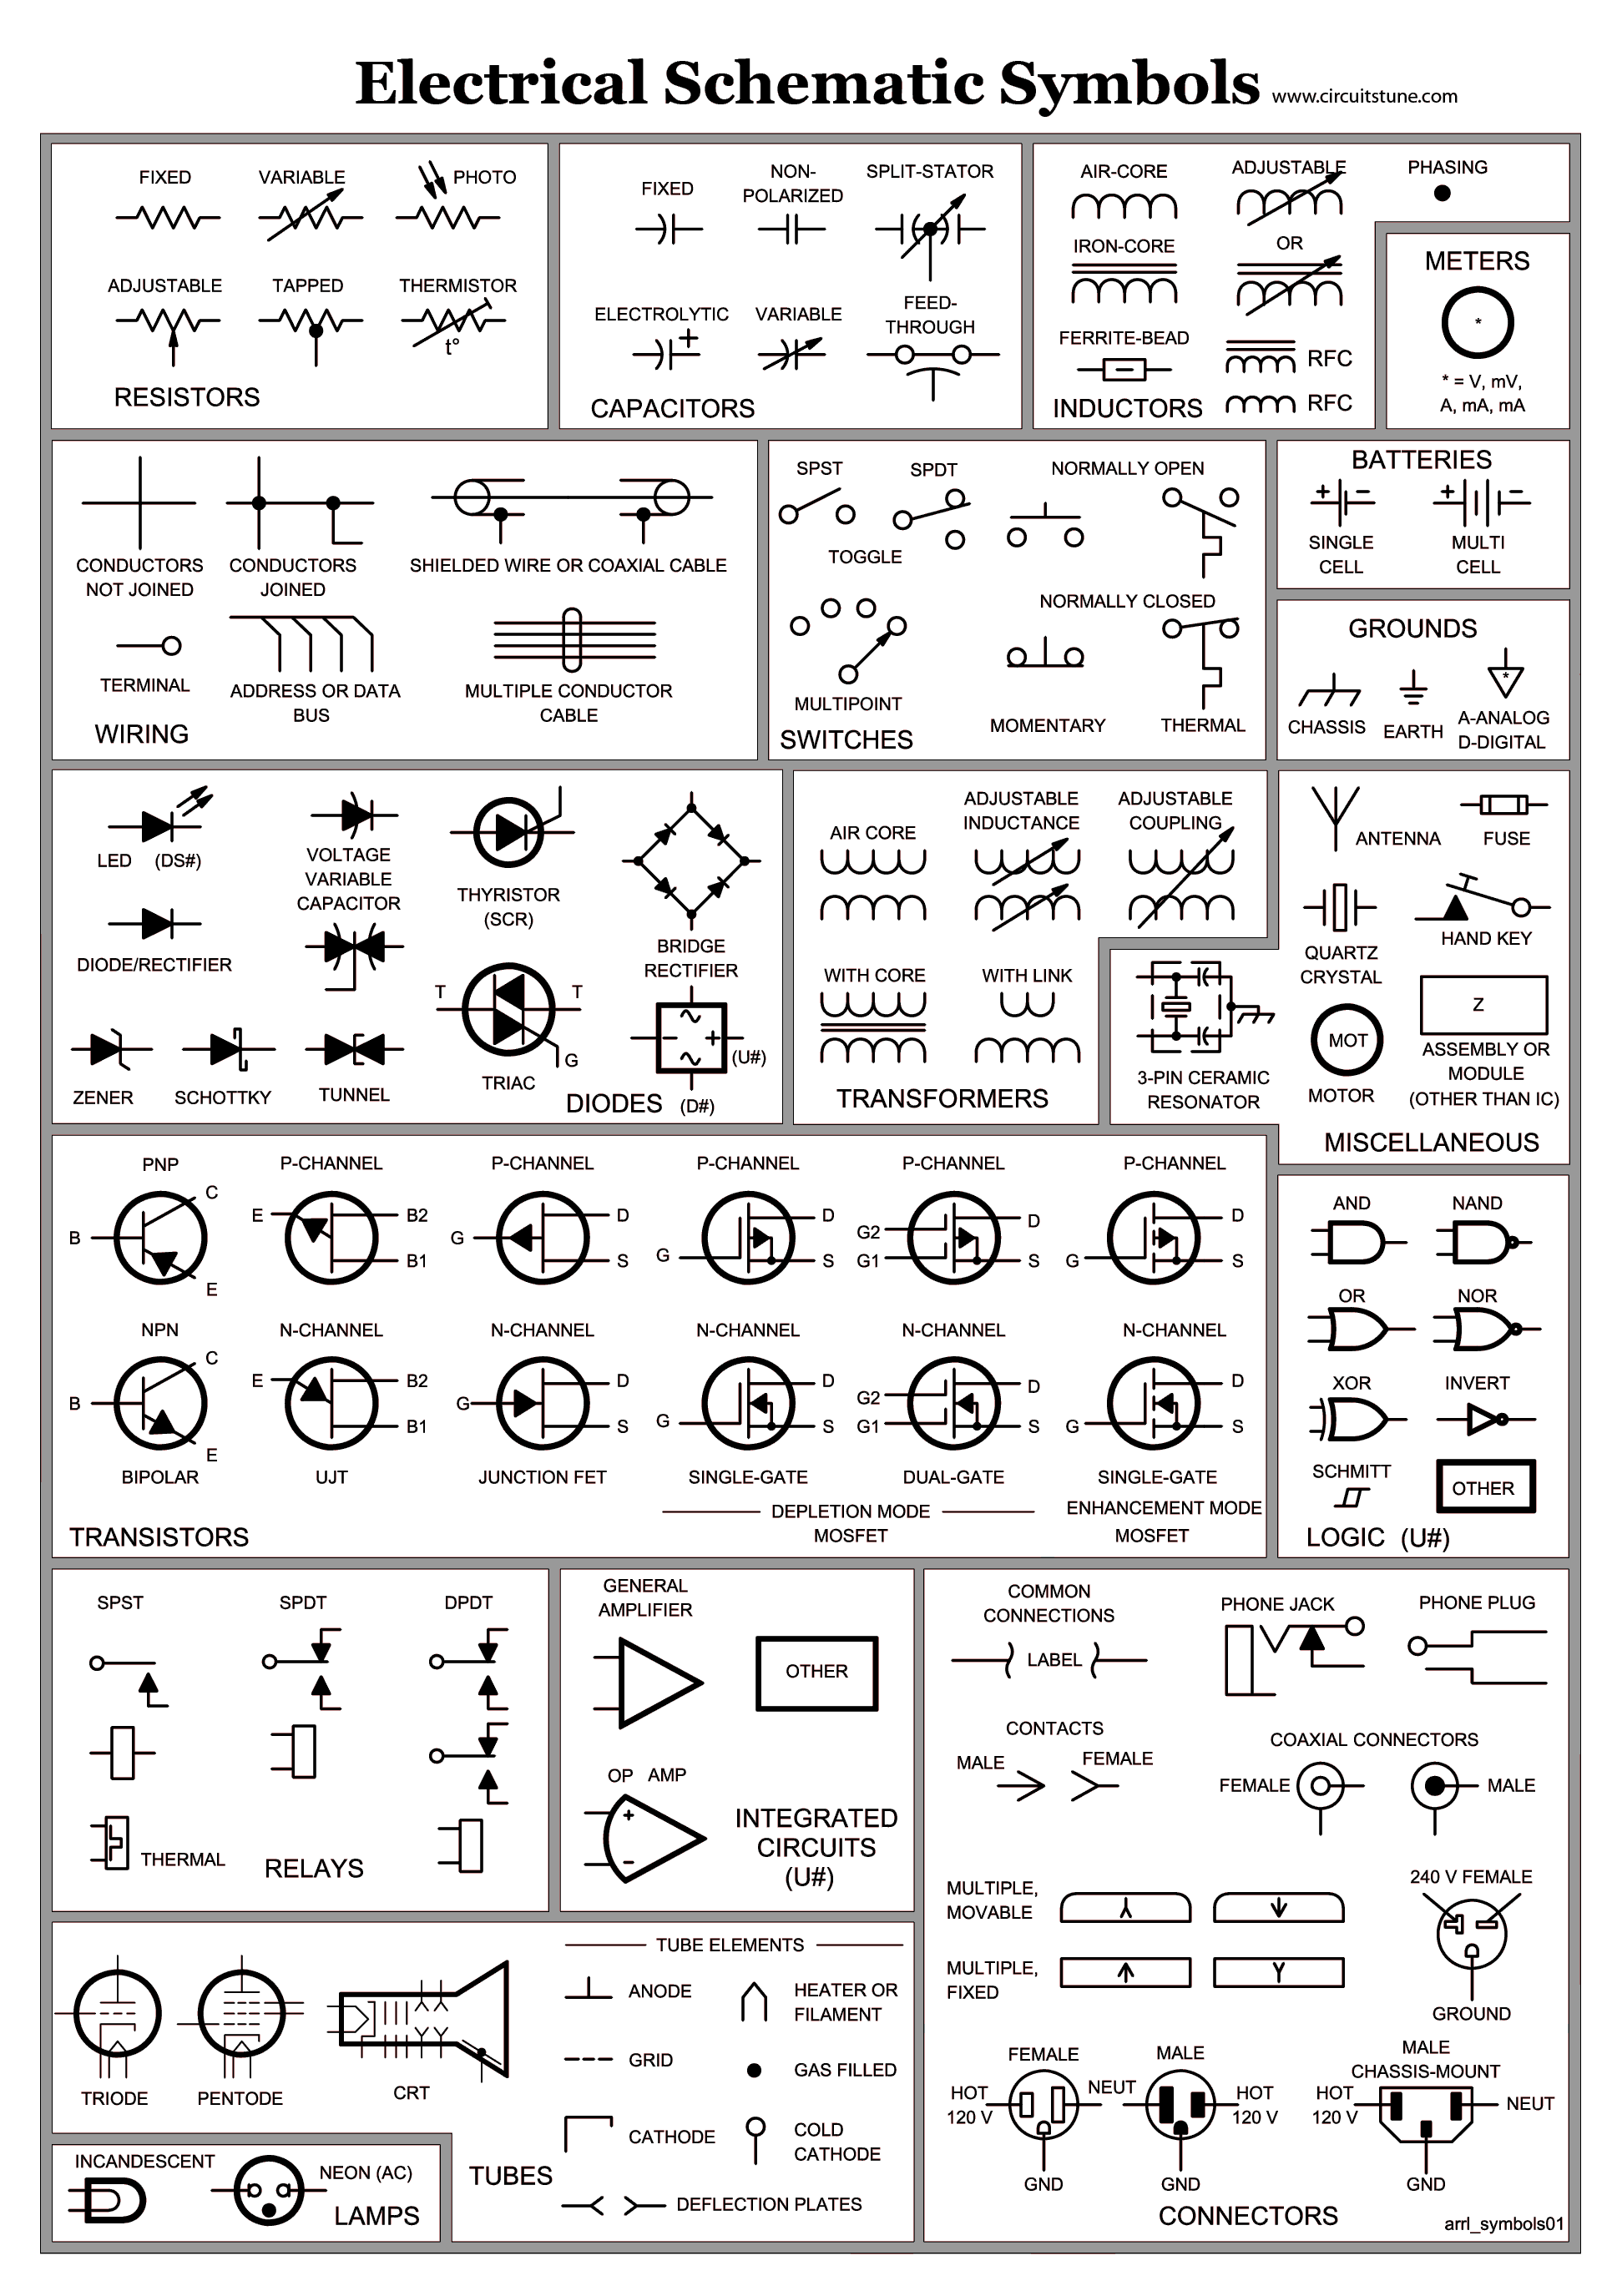 hight resolution of wiring diagram symbols valve drawing symbols 12v ac to dc converter dc electrical schematic symbols dc wiring schematic symbols